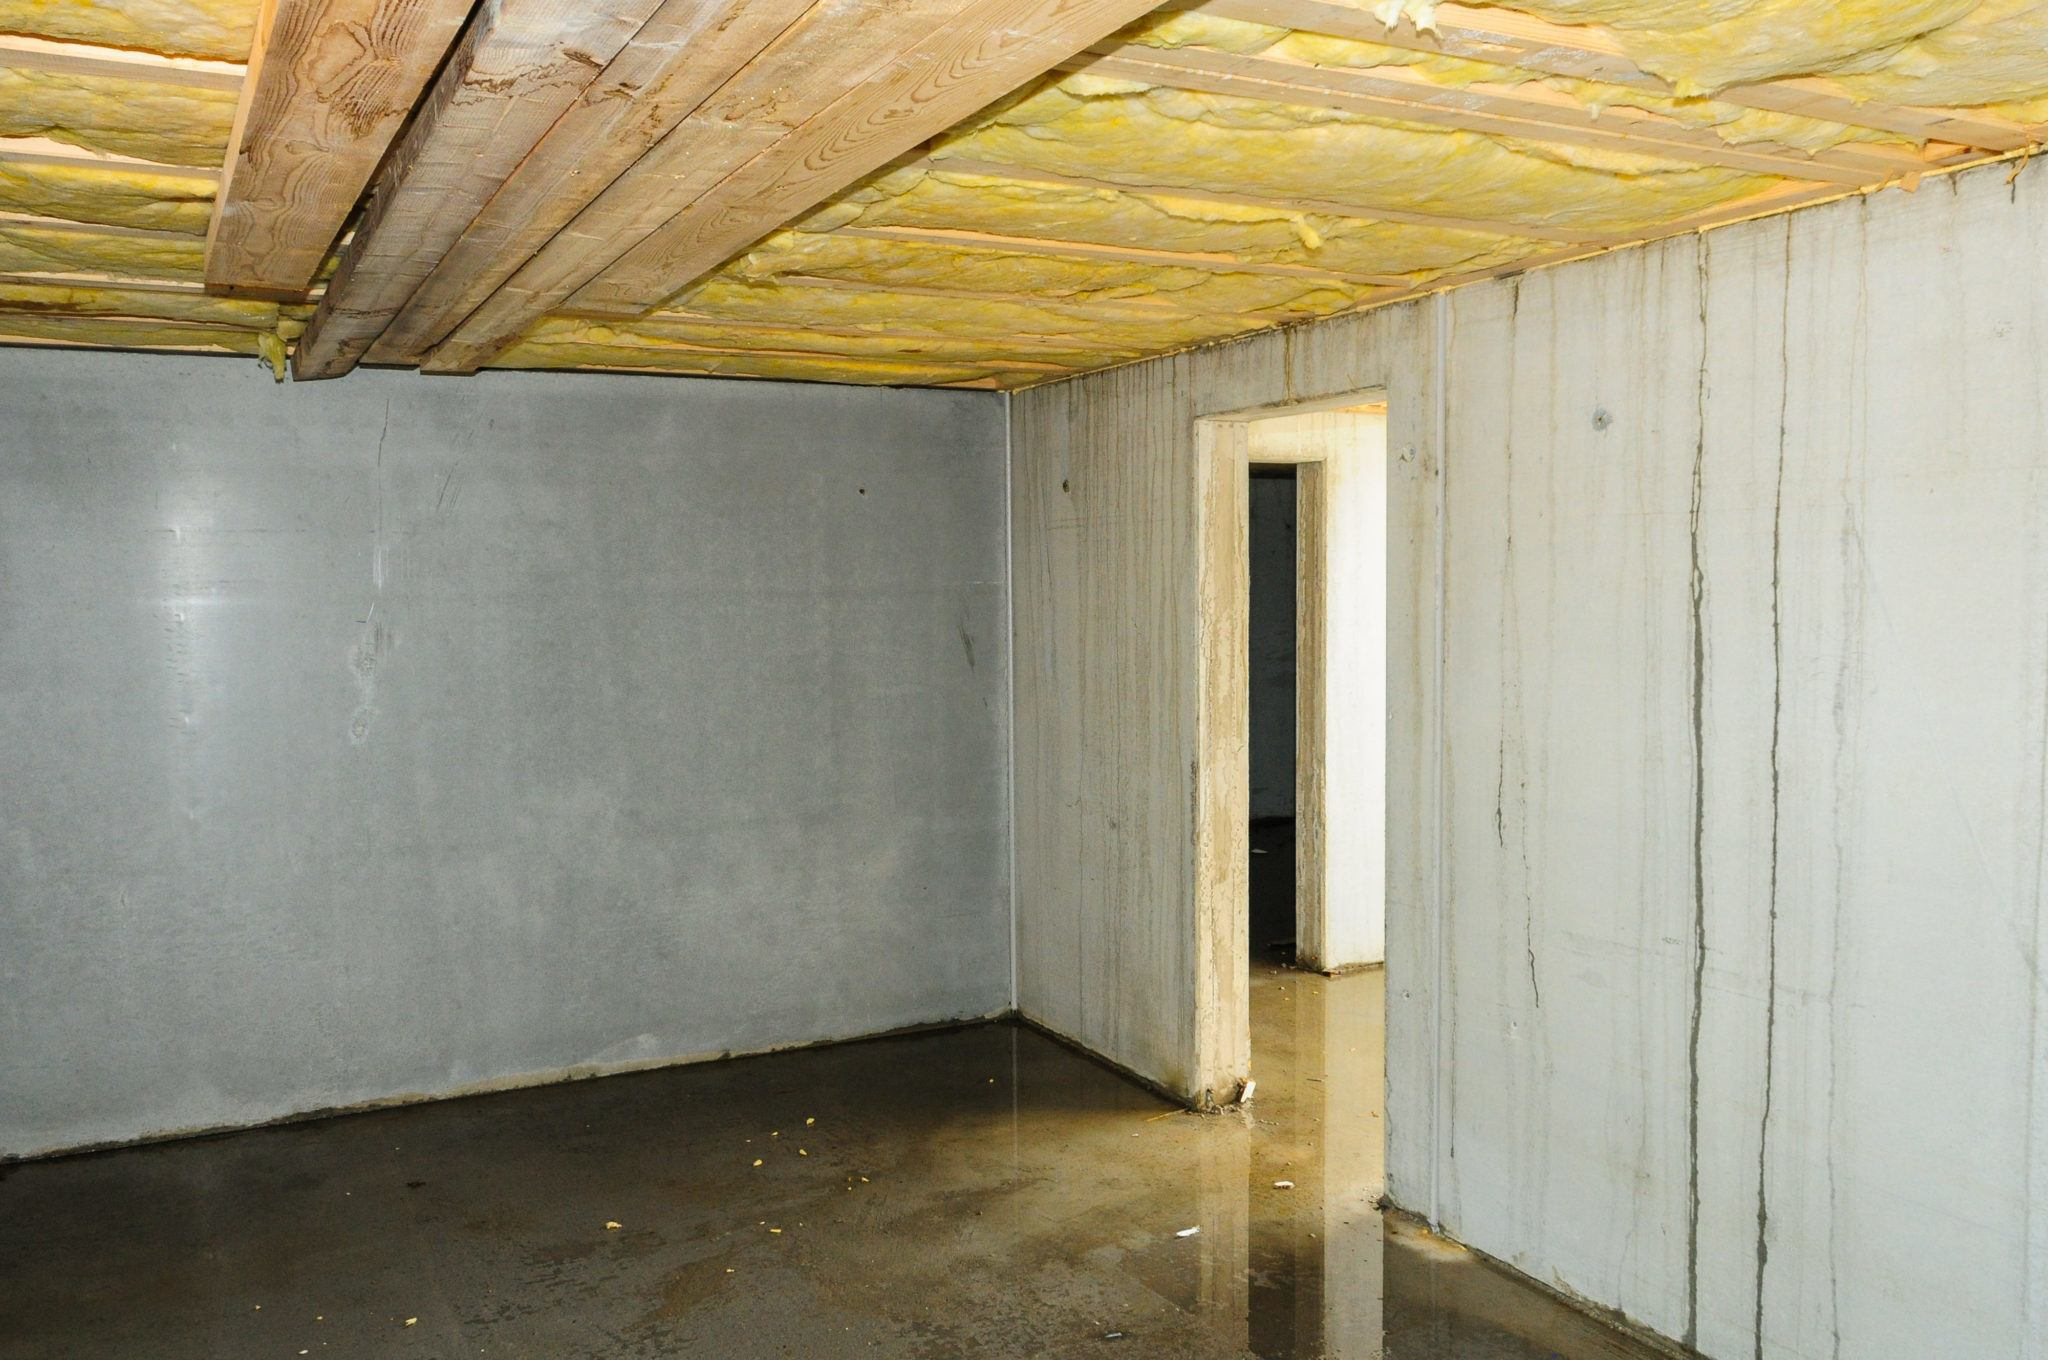 Basement Construction Ideas To Strengthen Your Basement Basement with a wet floor